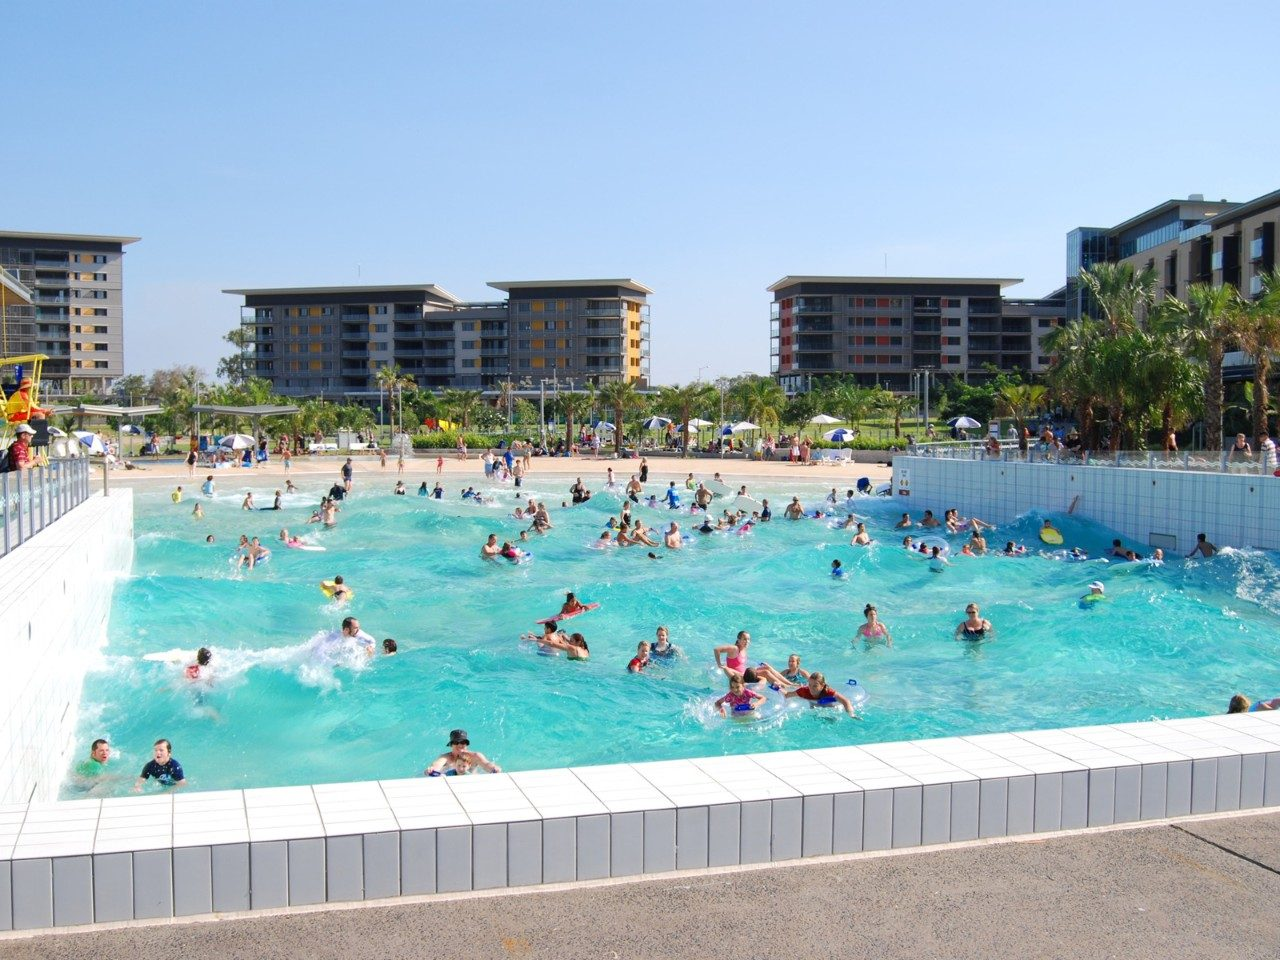 darwin-wave-lagoon-see-and-do-MANDATORY-CREDIT-Darwin-Waterfront-Corporation.jpg